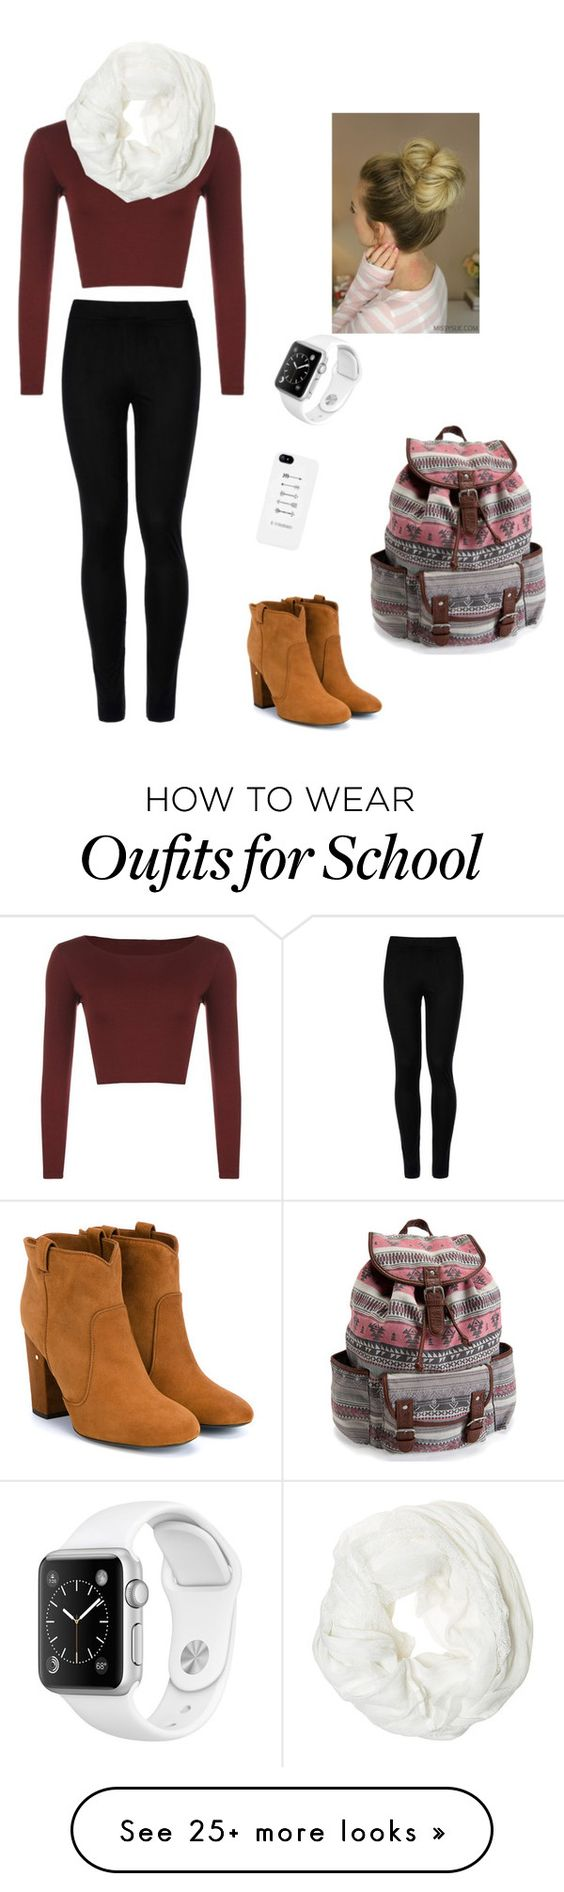 """Friday's school outfit"" by livelikeaangel on Polyvore featuring WearAll, Wolford, Laurence Dacade, Aéropostale and Betsey Johnson"